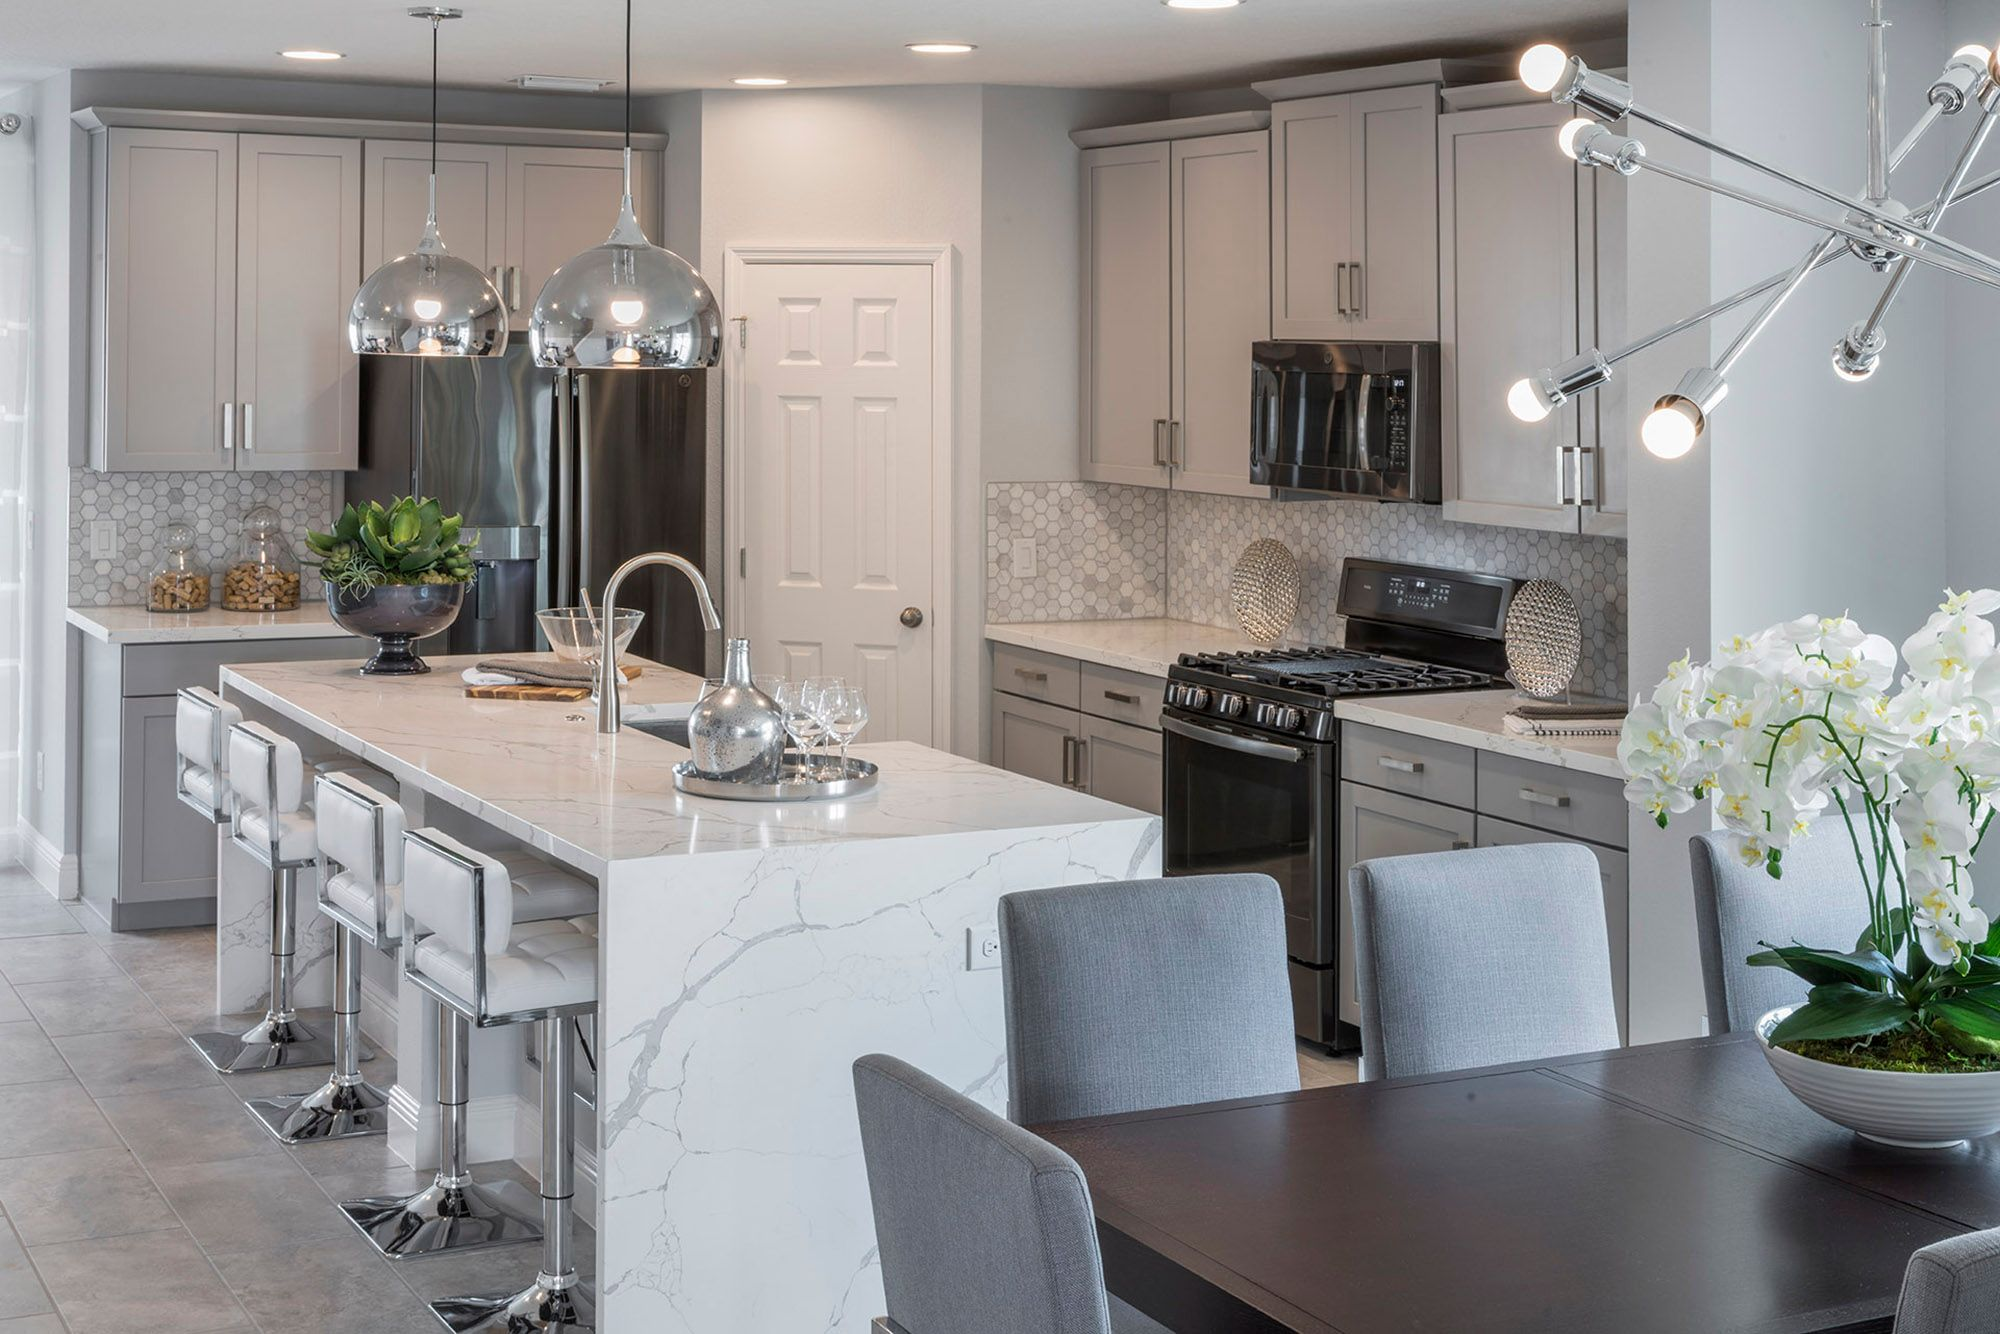 Kitchen featured in the Wilshire By Hanover Family Builders in Orlando, FL